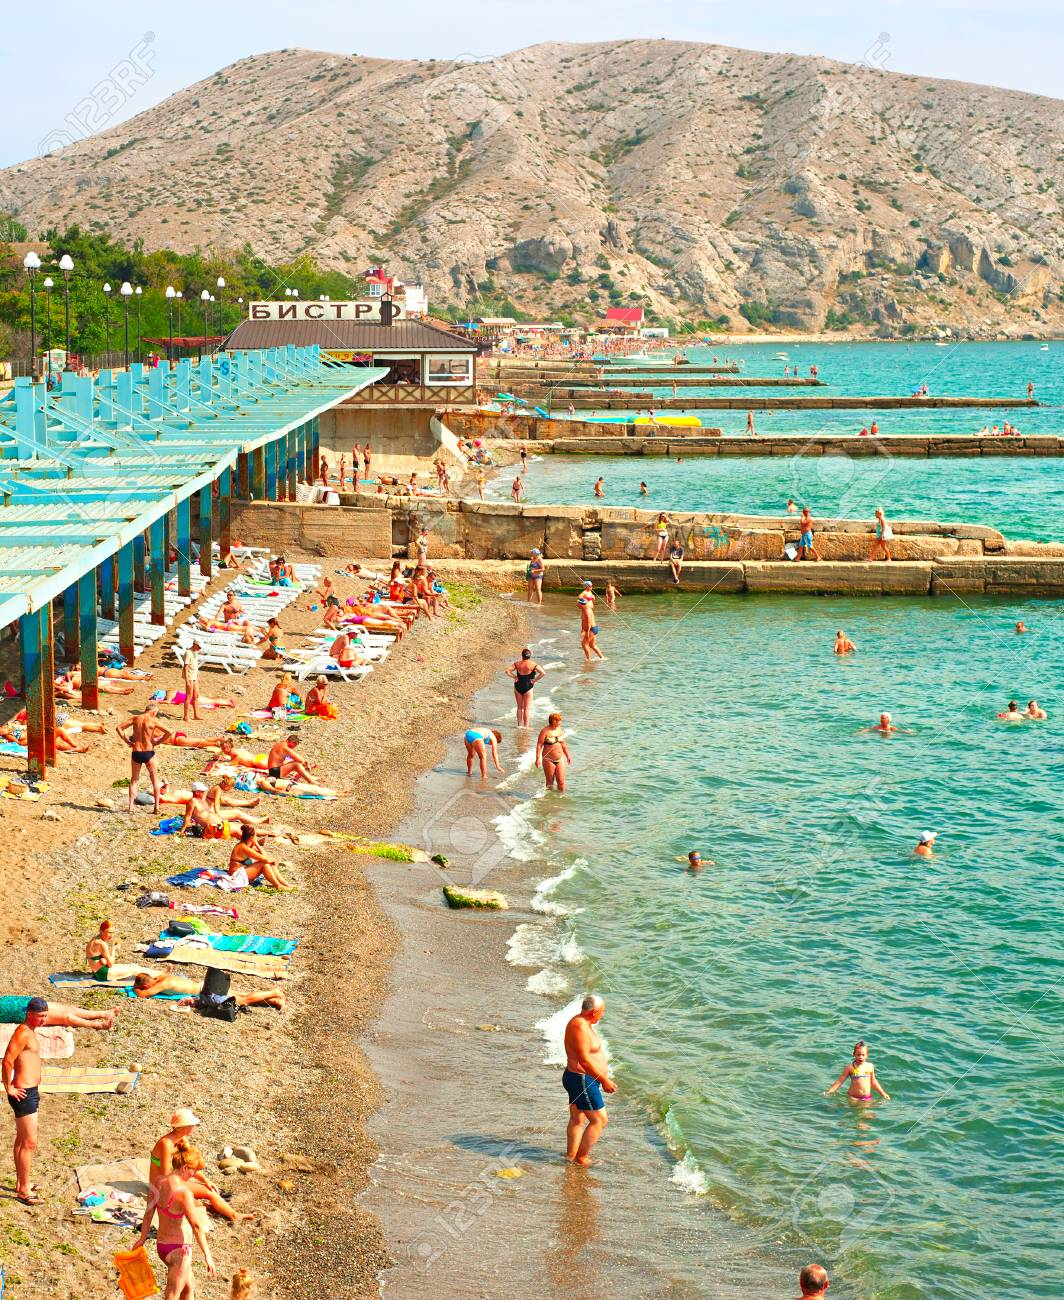 Sudak Ukraine Sept 08 2015 People At A Sea Beach In Sudak Stock Photo Picture And Royalty Free Image Image 72251132